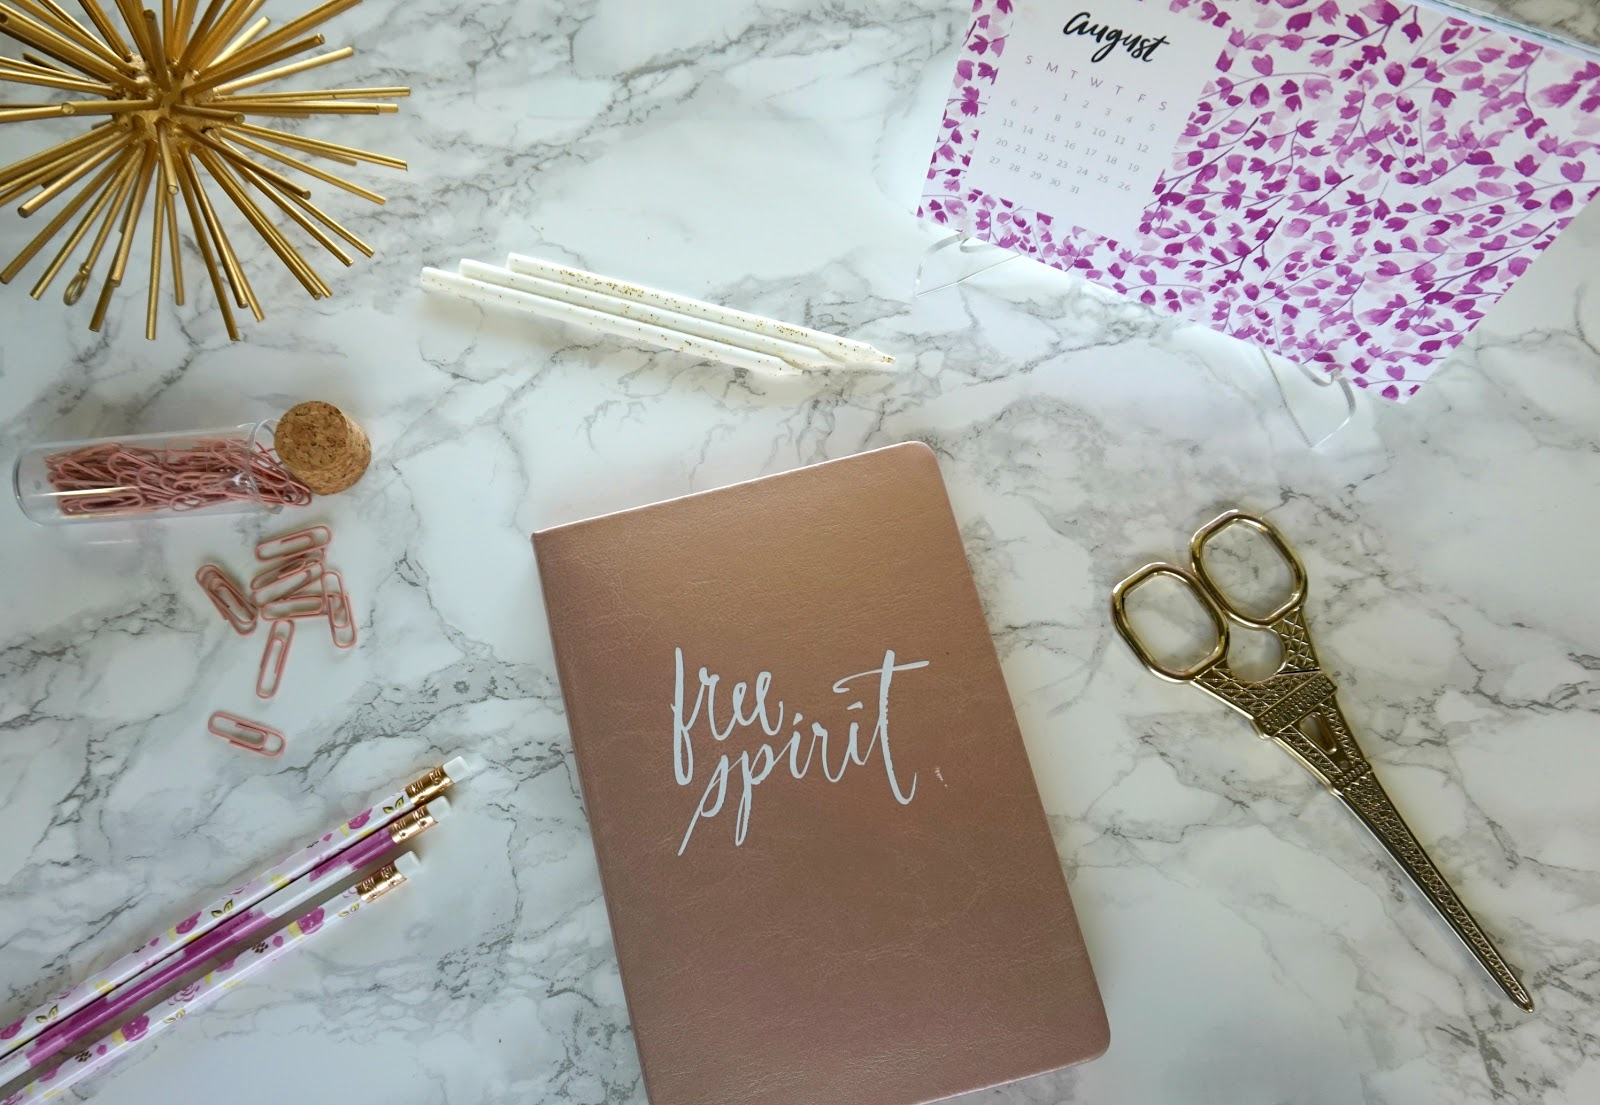 Best Lifestyle Monthly Subscription Box Service | August POPSUGAR Must Have Box // Beauty With Lily, A West Texas Beauty, Fashion & Lifestyle Blog